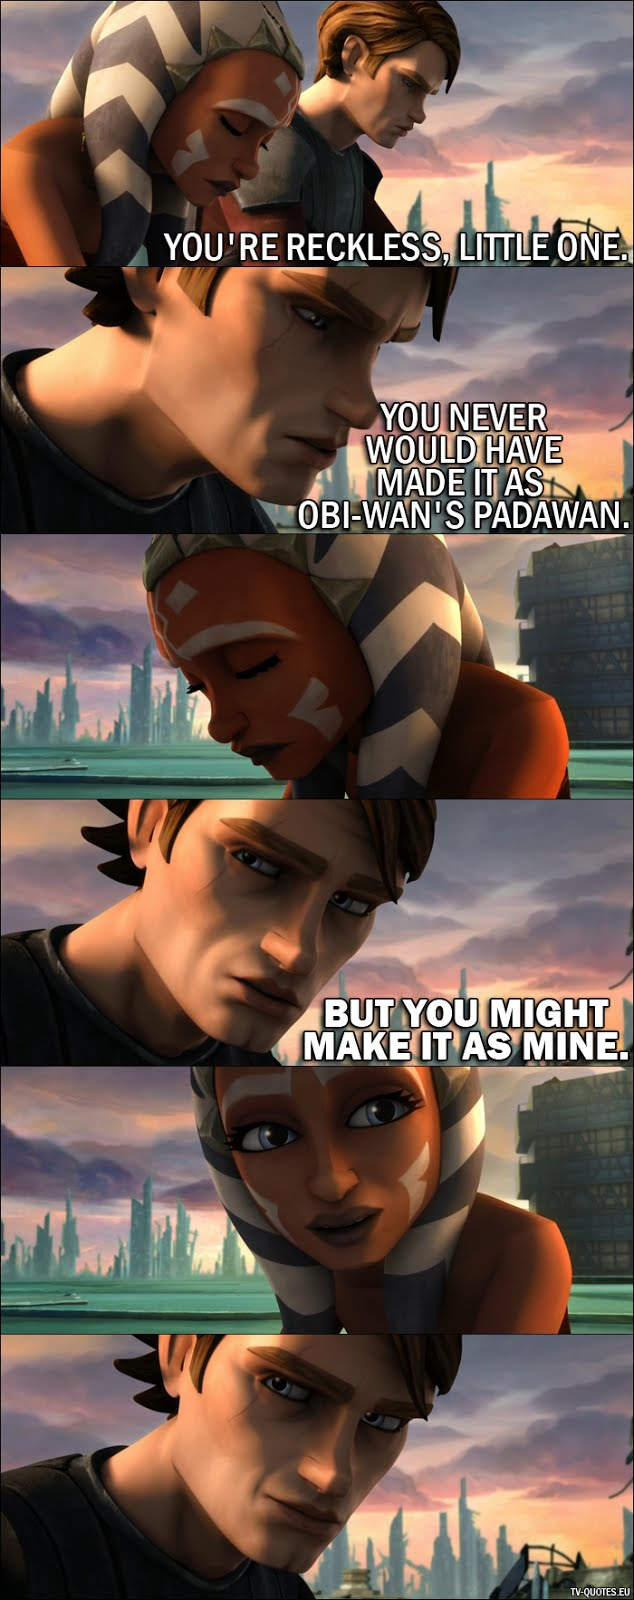 30 Best Quotes from Star Wars: The Clone Wars (2008 Movie) - Anakin Skywalker: You're reckless, little one. You never would have made it as Obi-Wan's Padawan. But you might make it as mine.